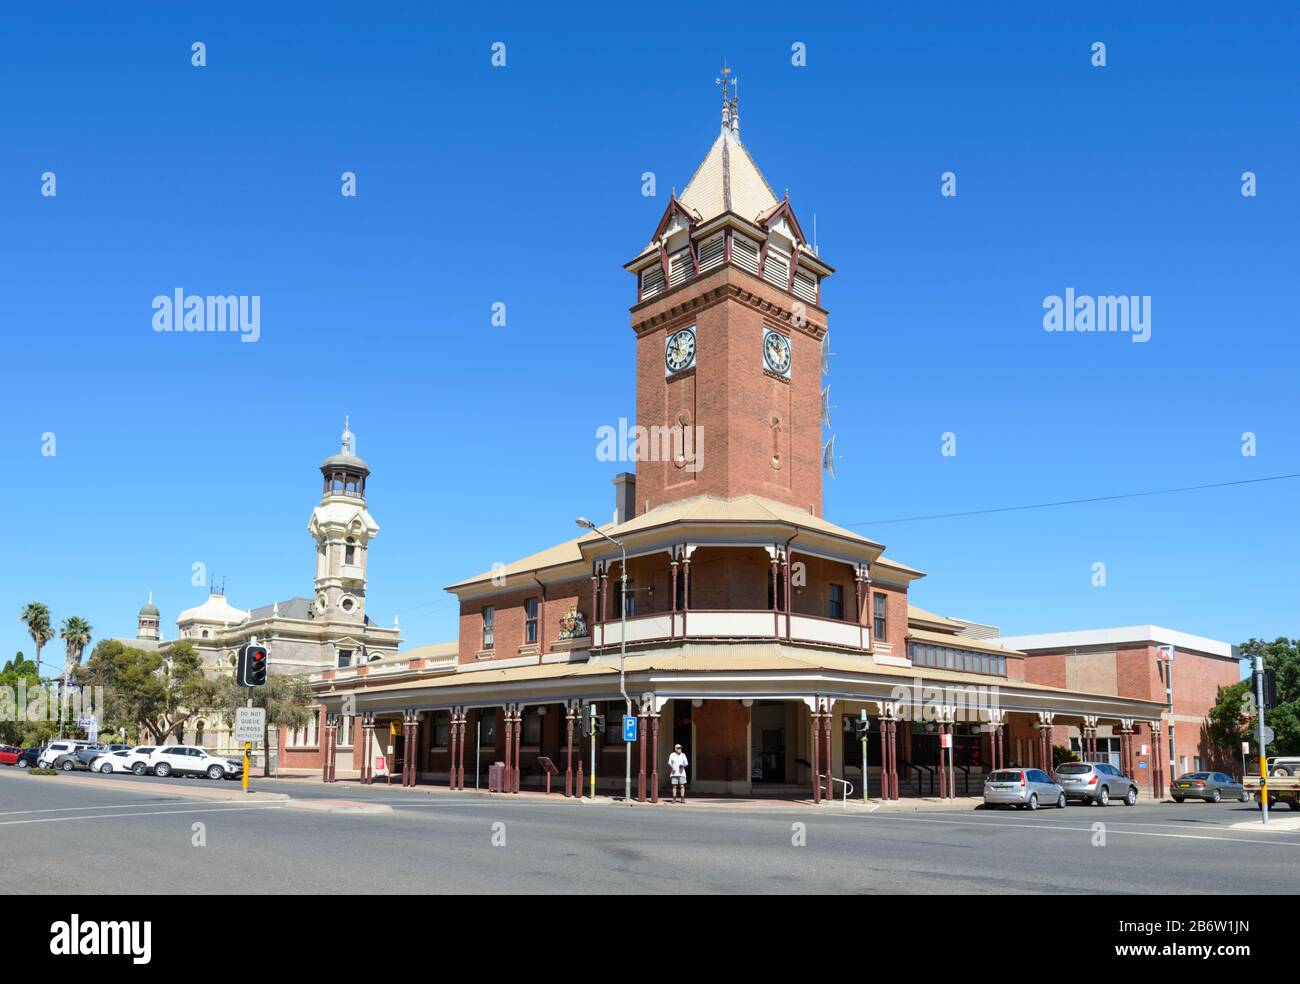 View of the Heritage-listed Post Office Building, 1892, Argent Street, Broken Hill, New South Wales, NSW, Australia Stock Photo